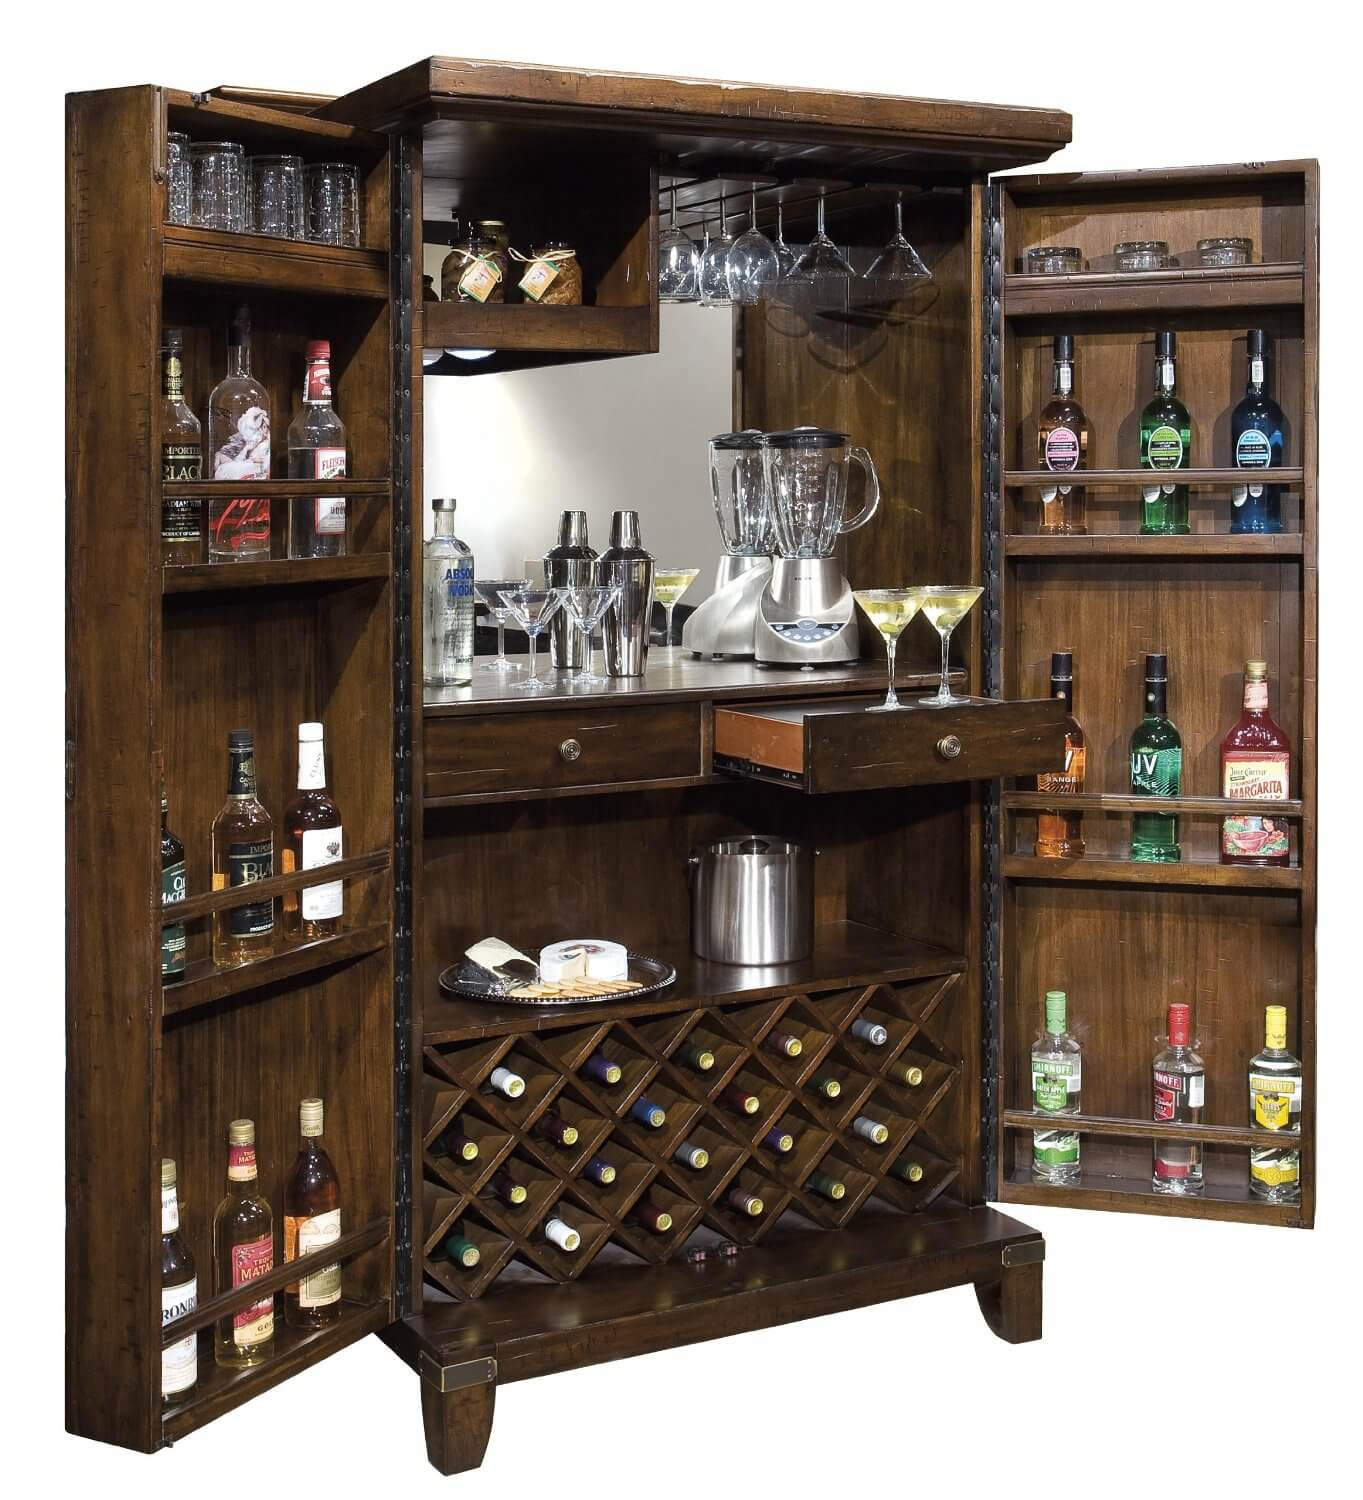 Standing wine and liquor cabinet in dark wood